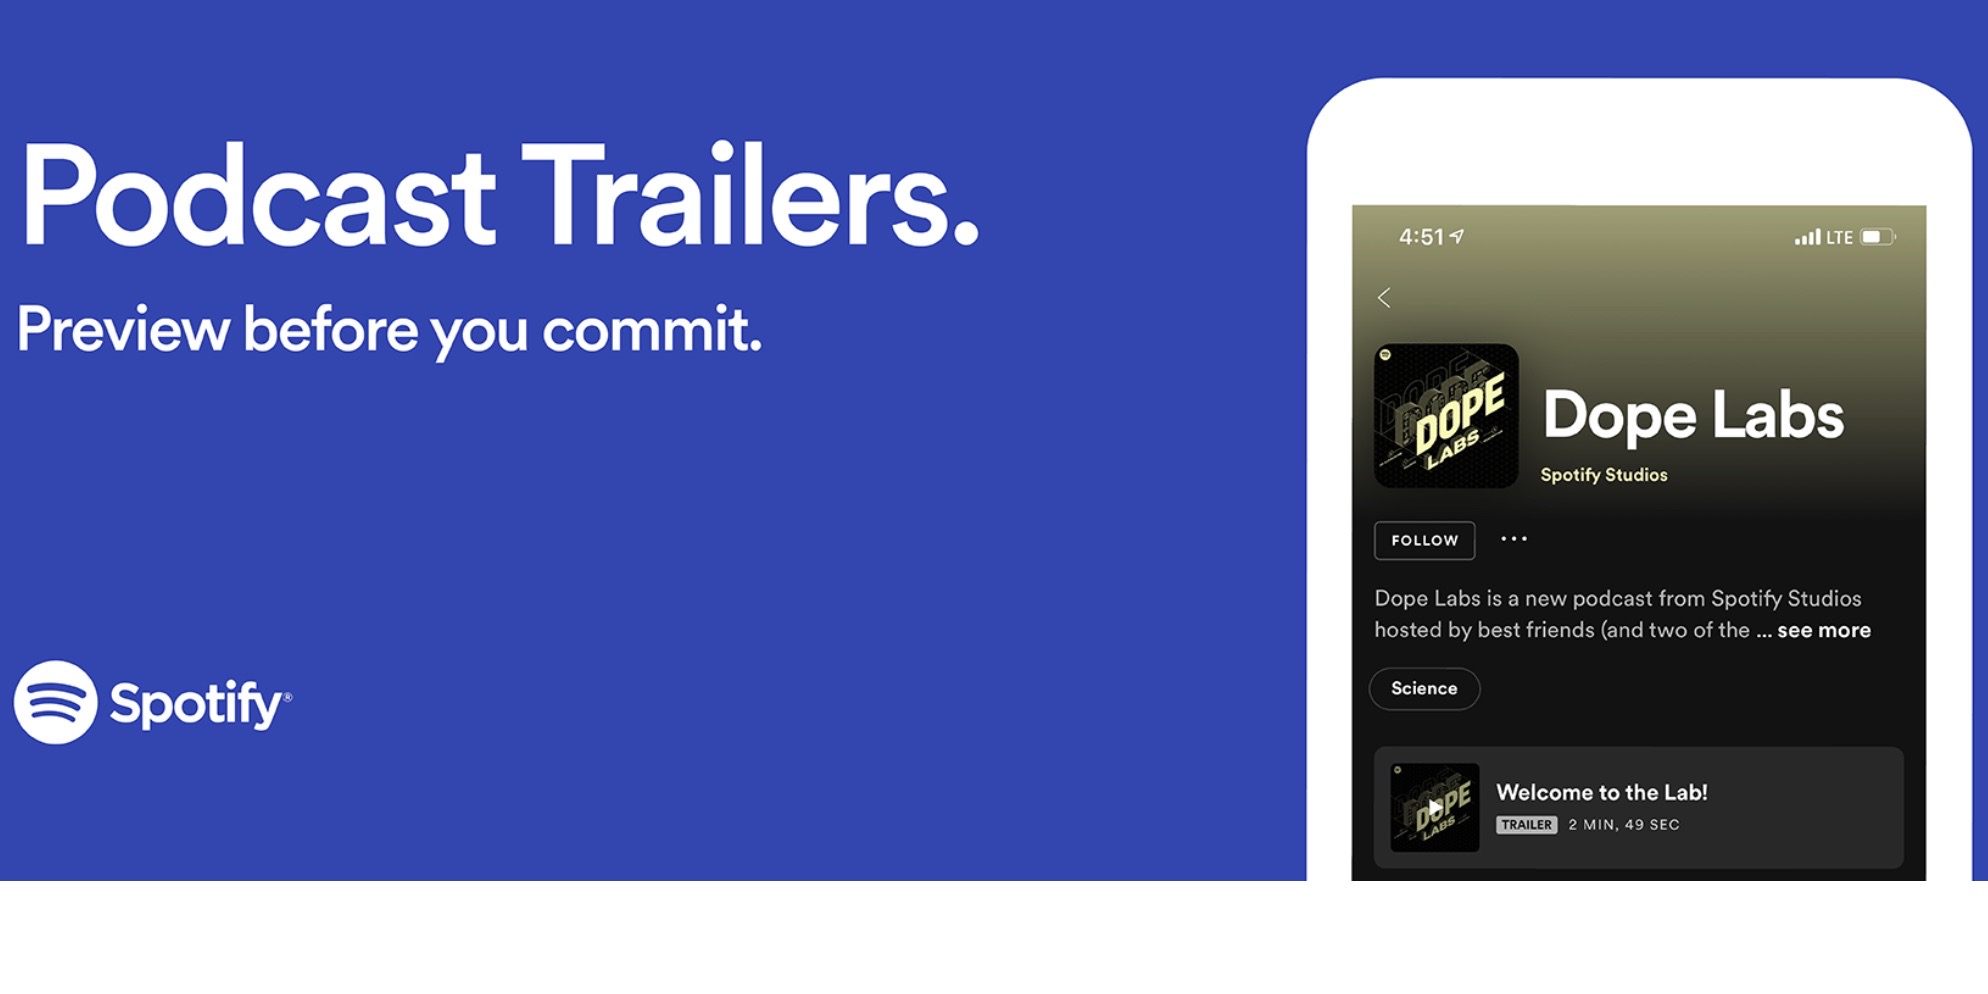 Spotify updates podcast show pages with trailers and Apple-inspired design - 9to5Mac